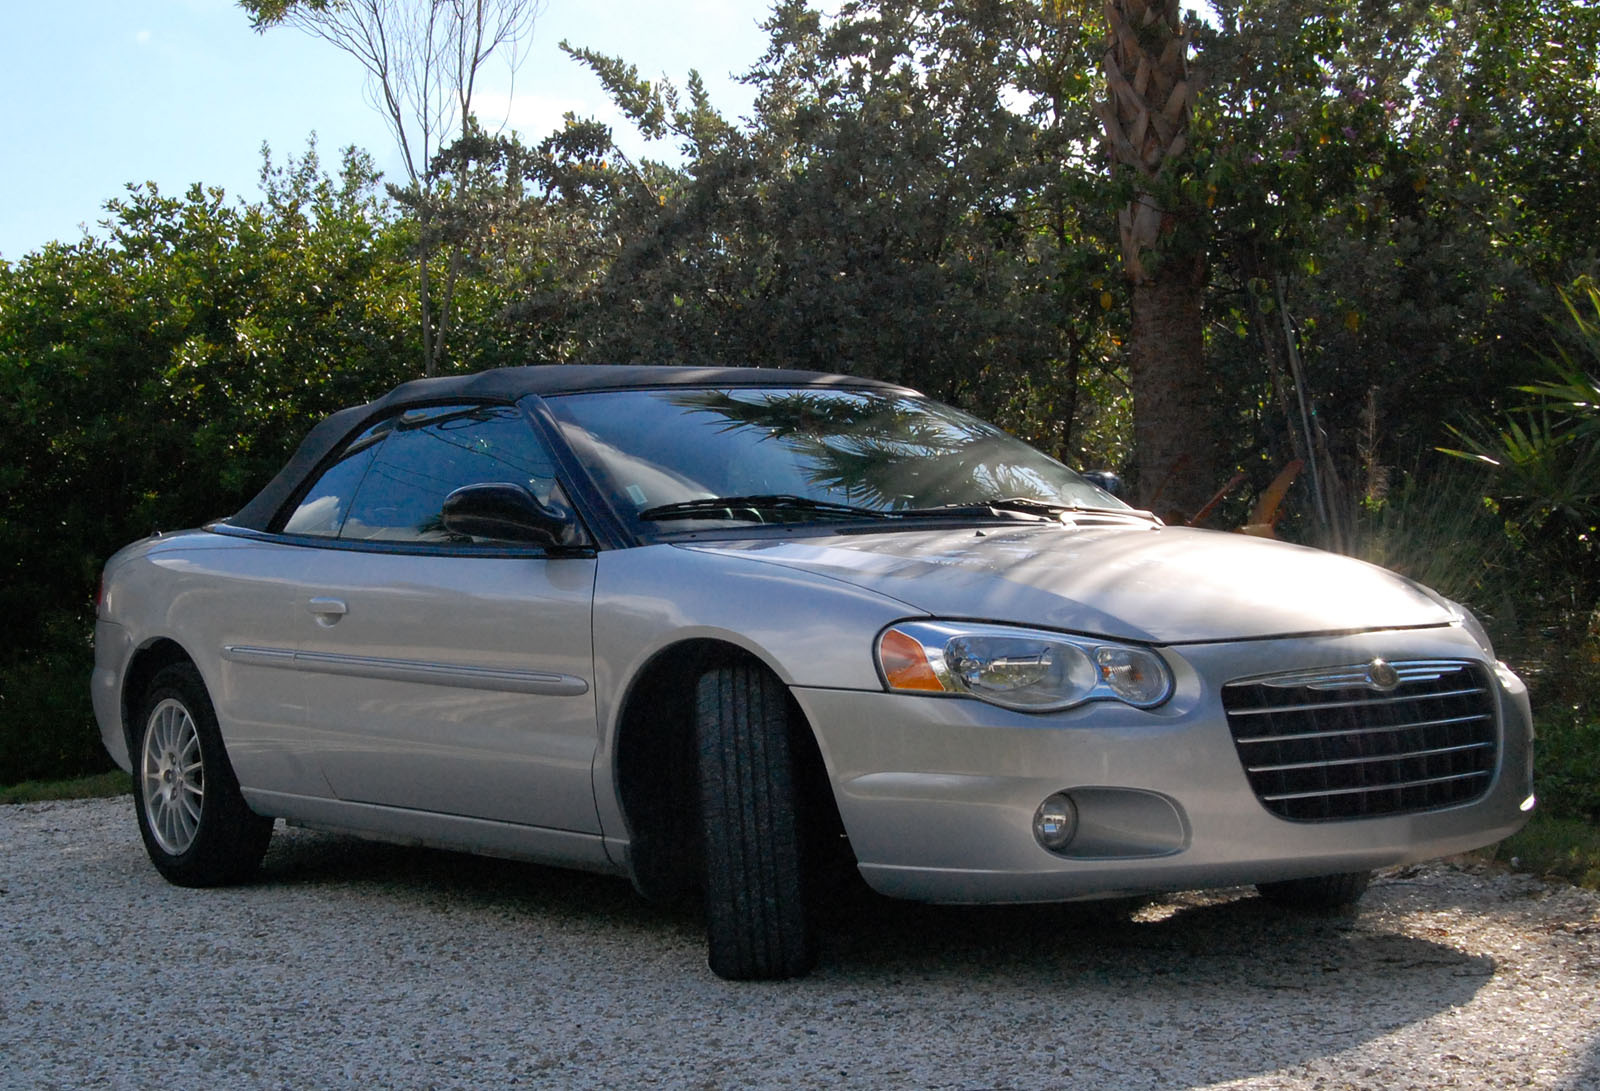 2005 chrysler sebring overview cargurus. Black Bedroom Furniture Sets. Home Design Ideas